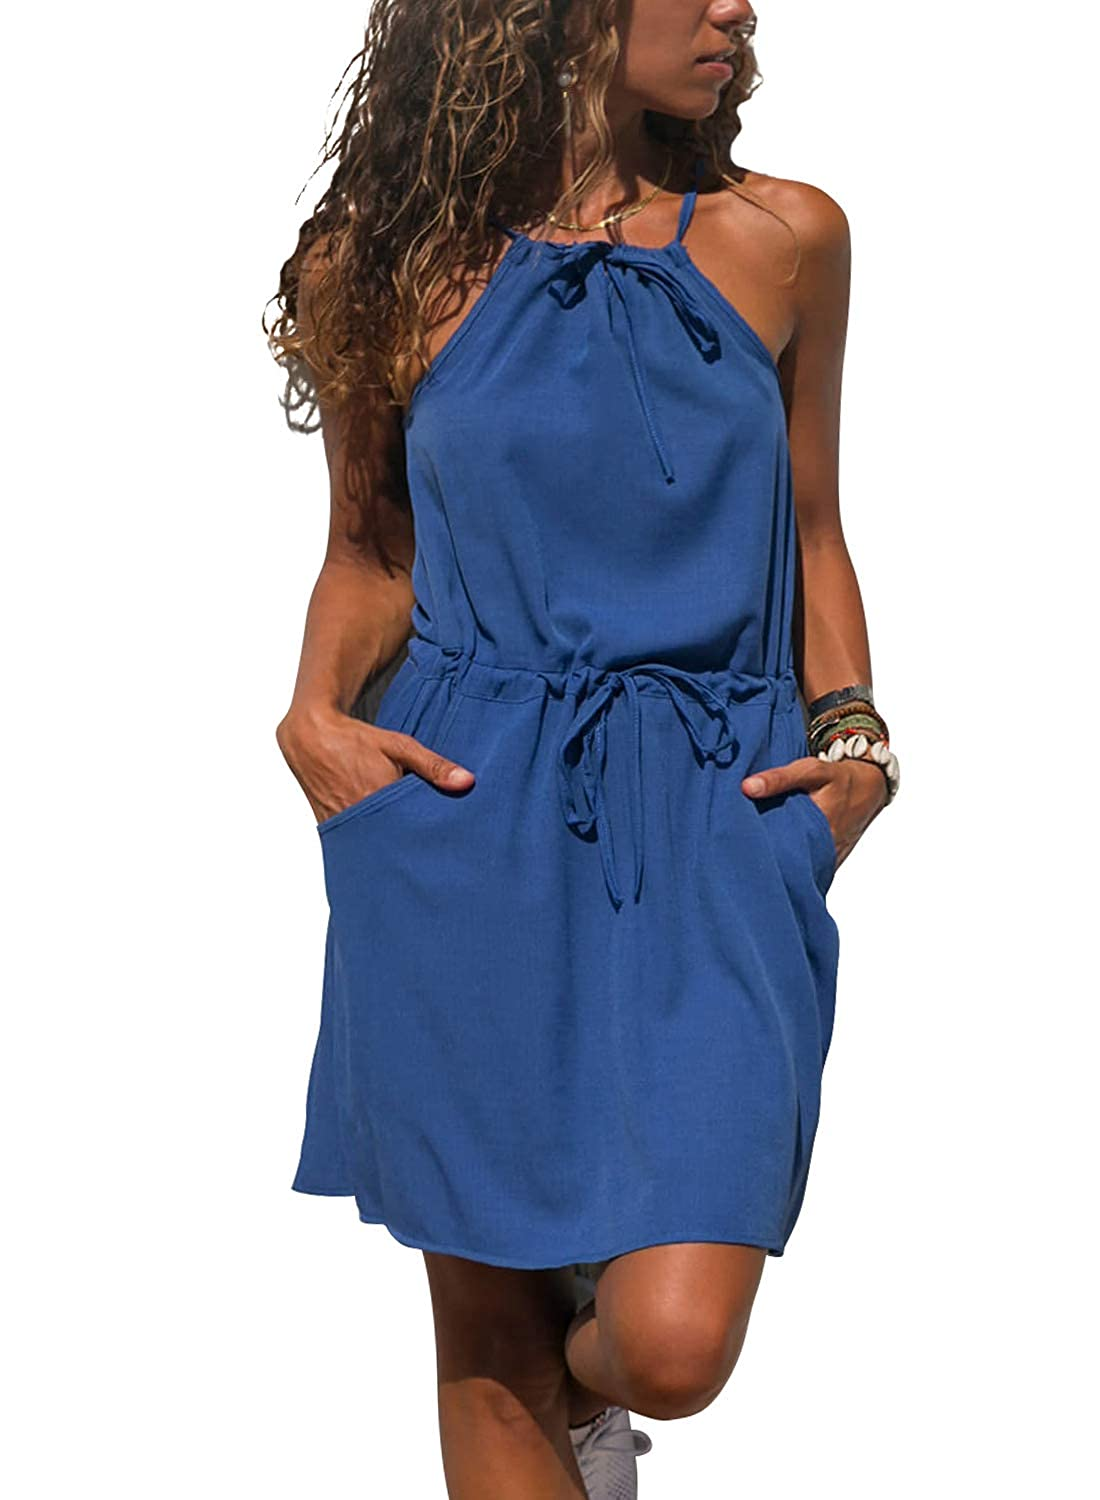 Azokoe Women Summer Casual Loose Short Romper Sleeveless High Waisted Jumpsuit with Pockets